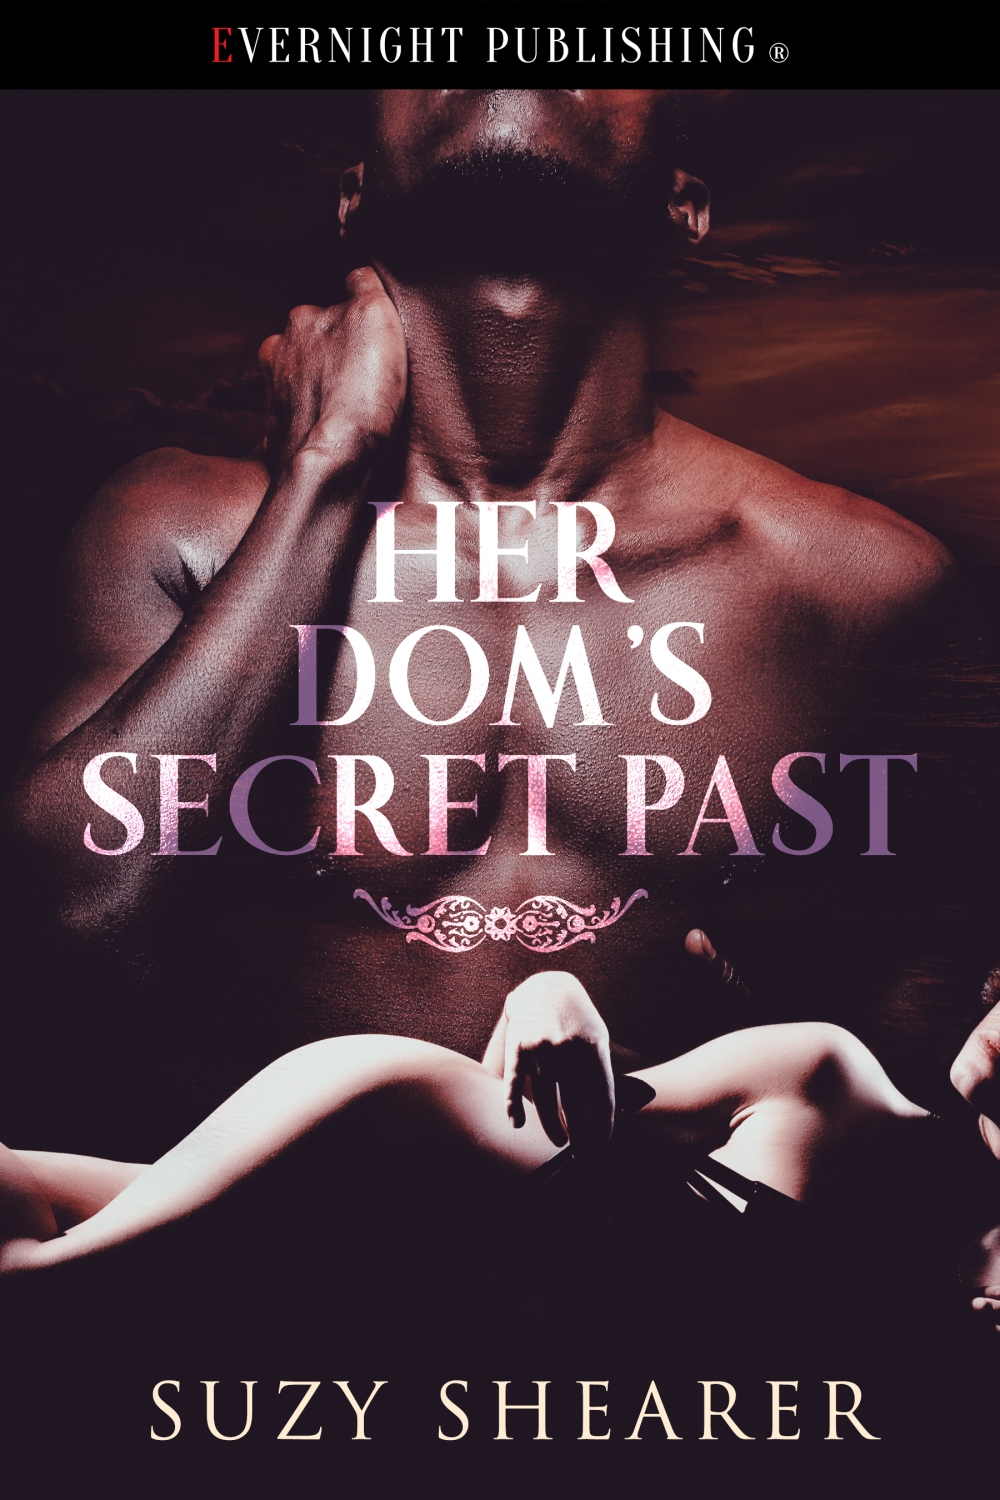 Her Dom's Secret Past-evernightpublishing-2018-eBook-over.jpg